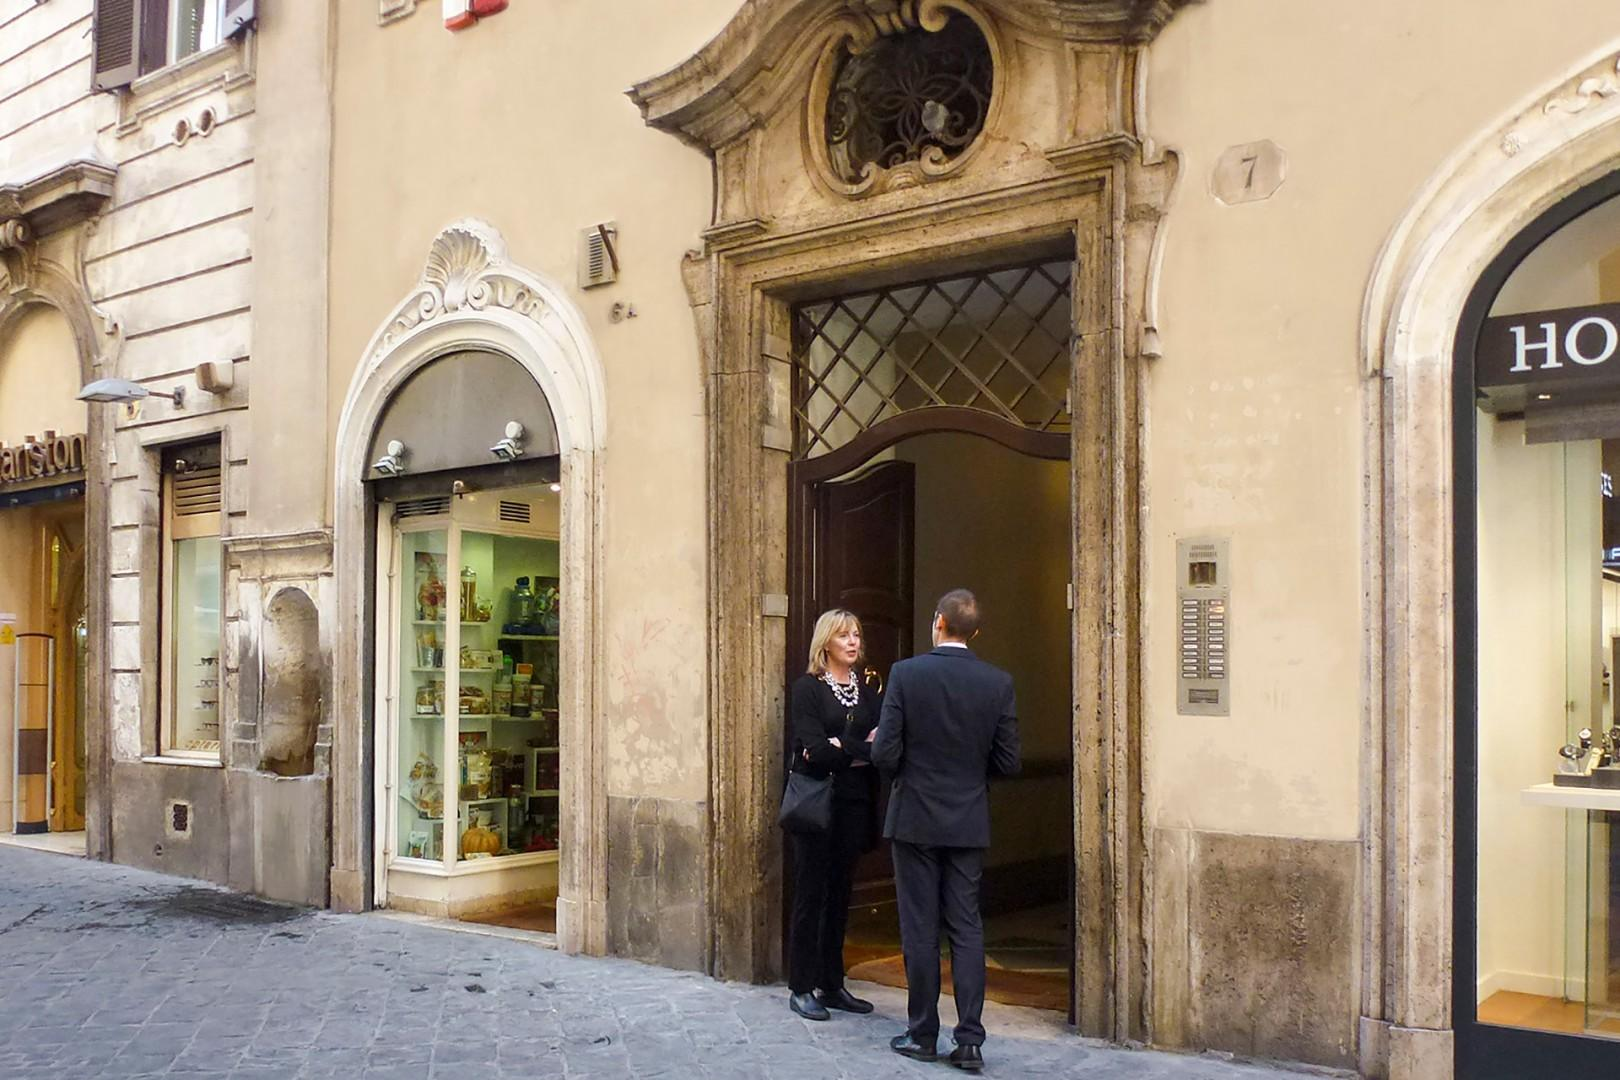 The apartment is located in this historic building in an elegant street in the Spanish Steps area.